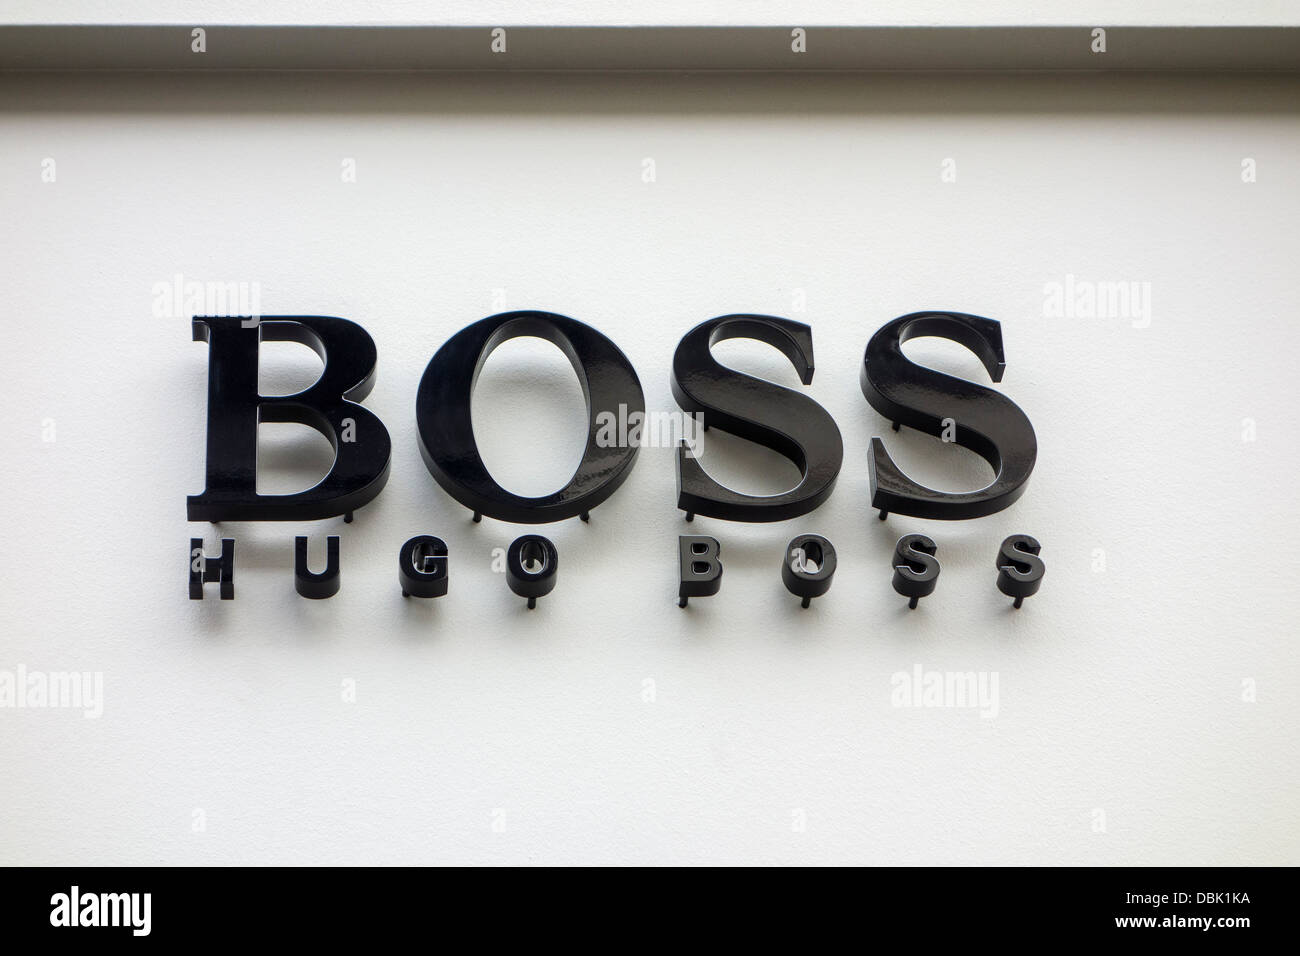 Hugo Boss Stockfotos & Hugo Boss Bilder Alamy